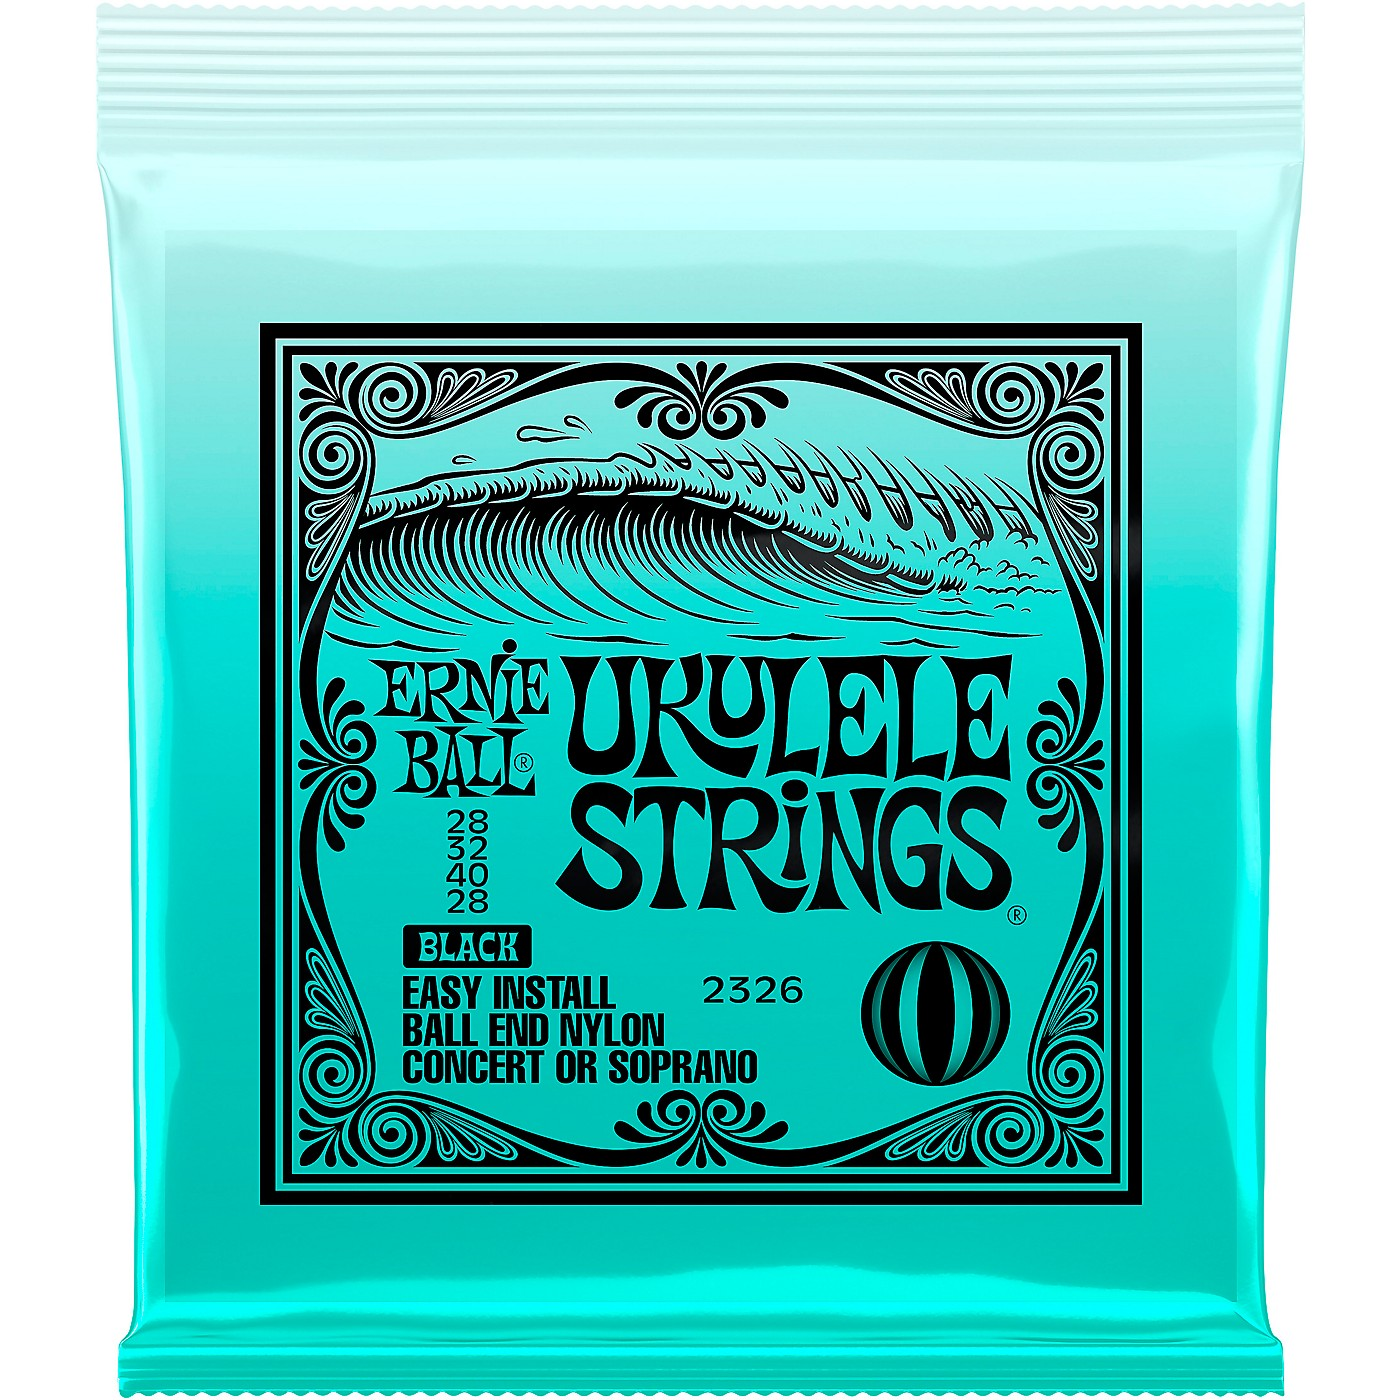 Ernie Ball Concert/Soprano Nylon Ball-End Ukulele Strings - Black thumbnail